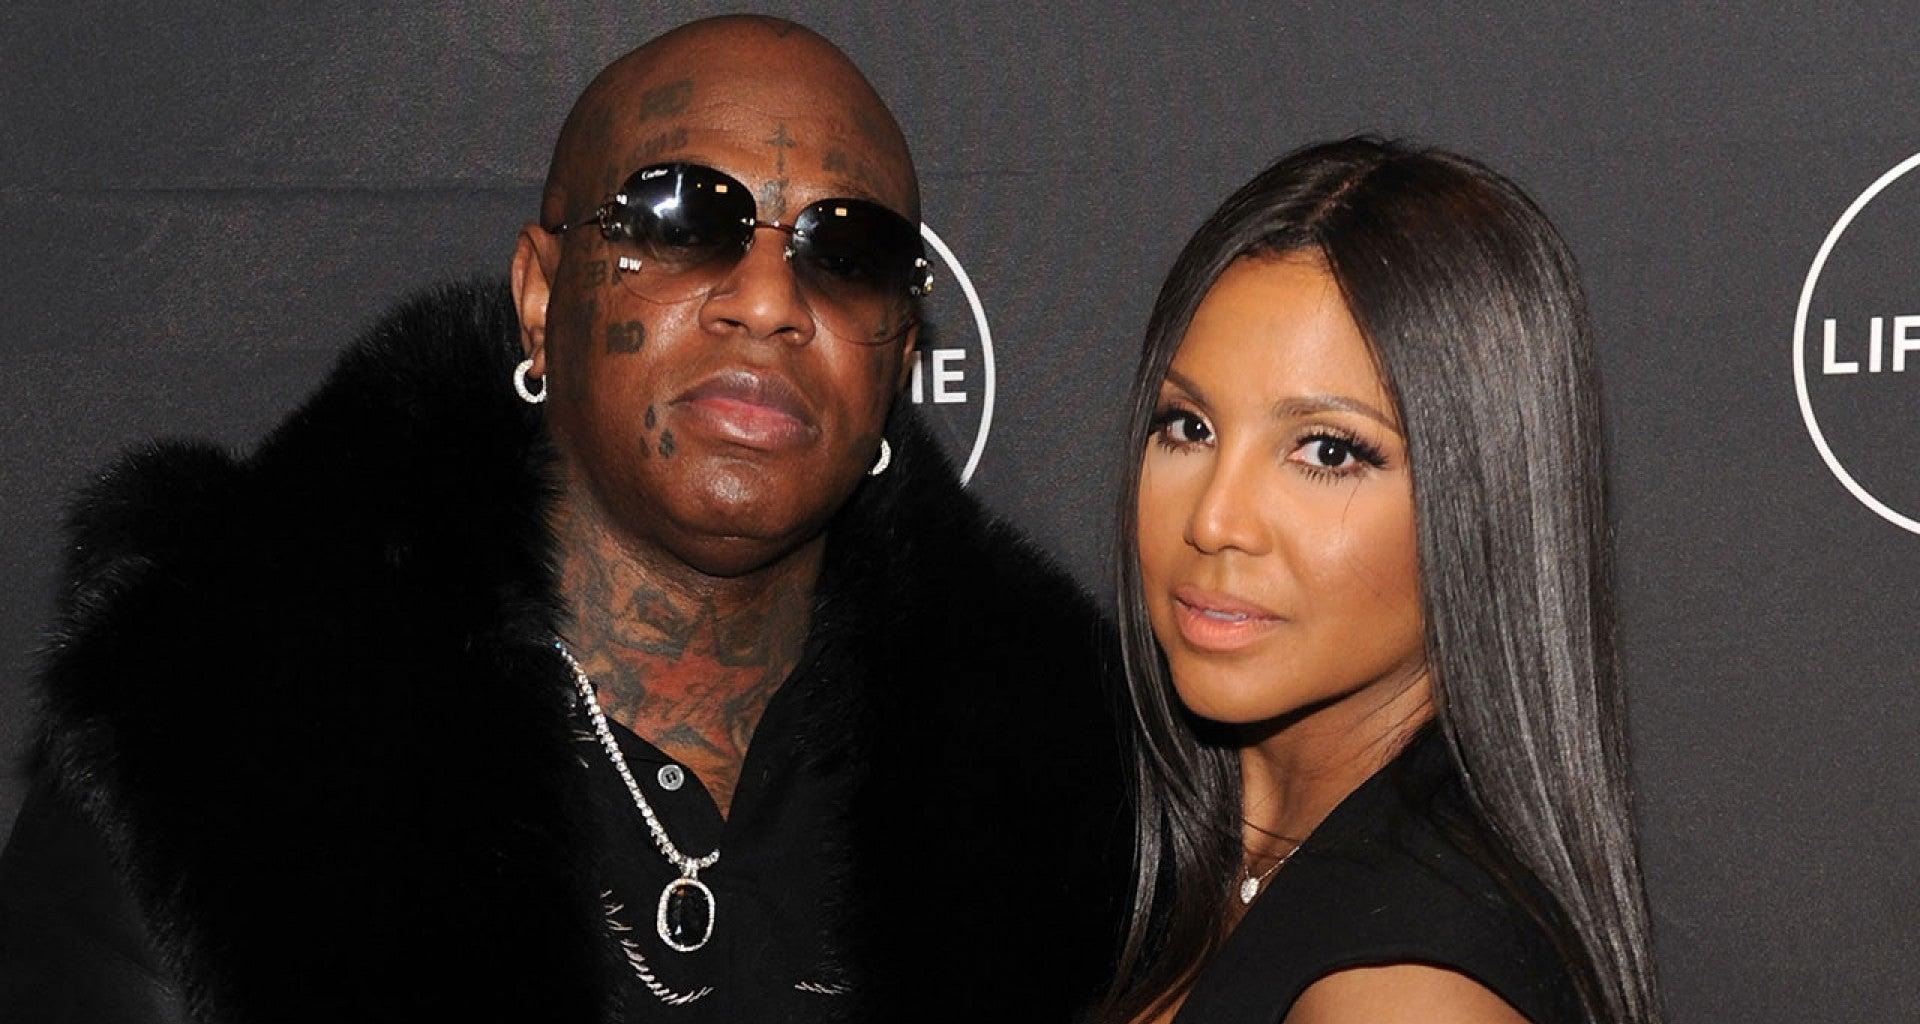 Toni Braxton Prepares A Surprise For Her Fans - Check Out The Teaser Video